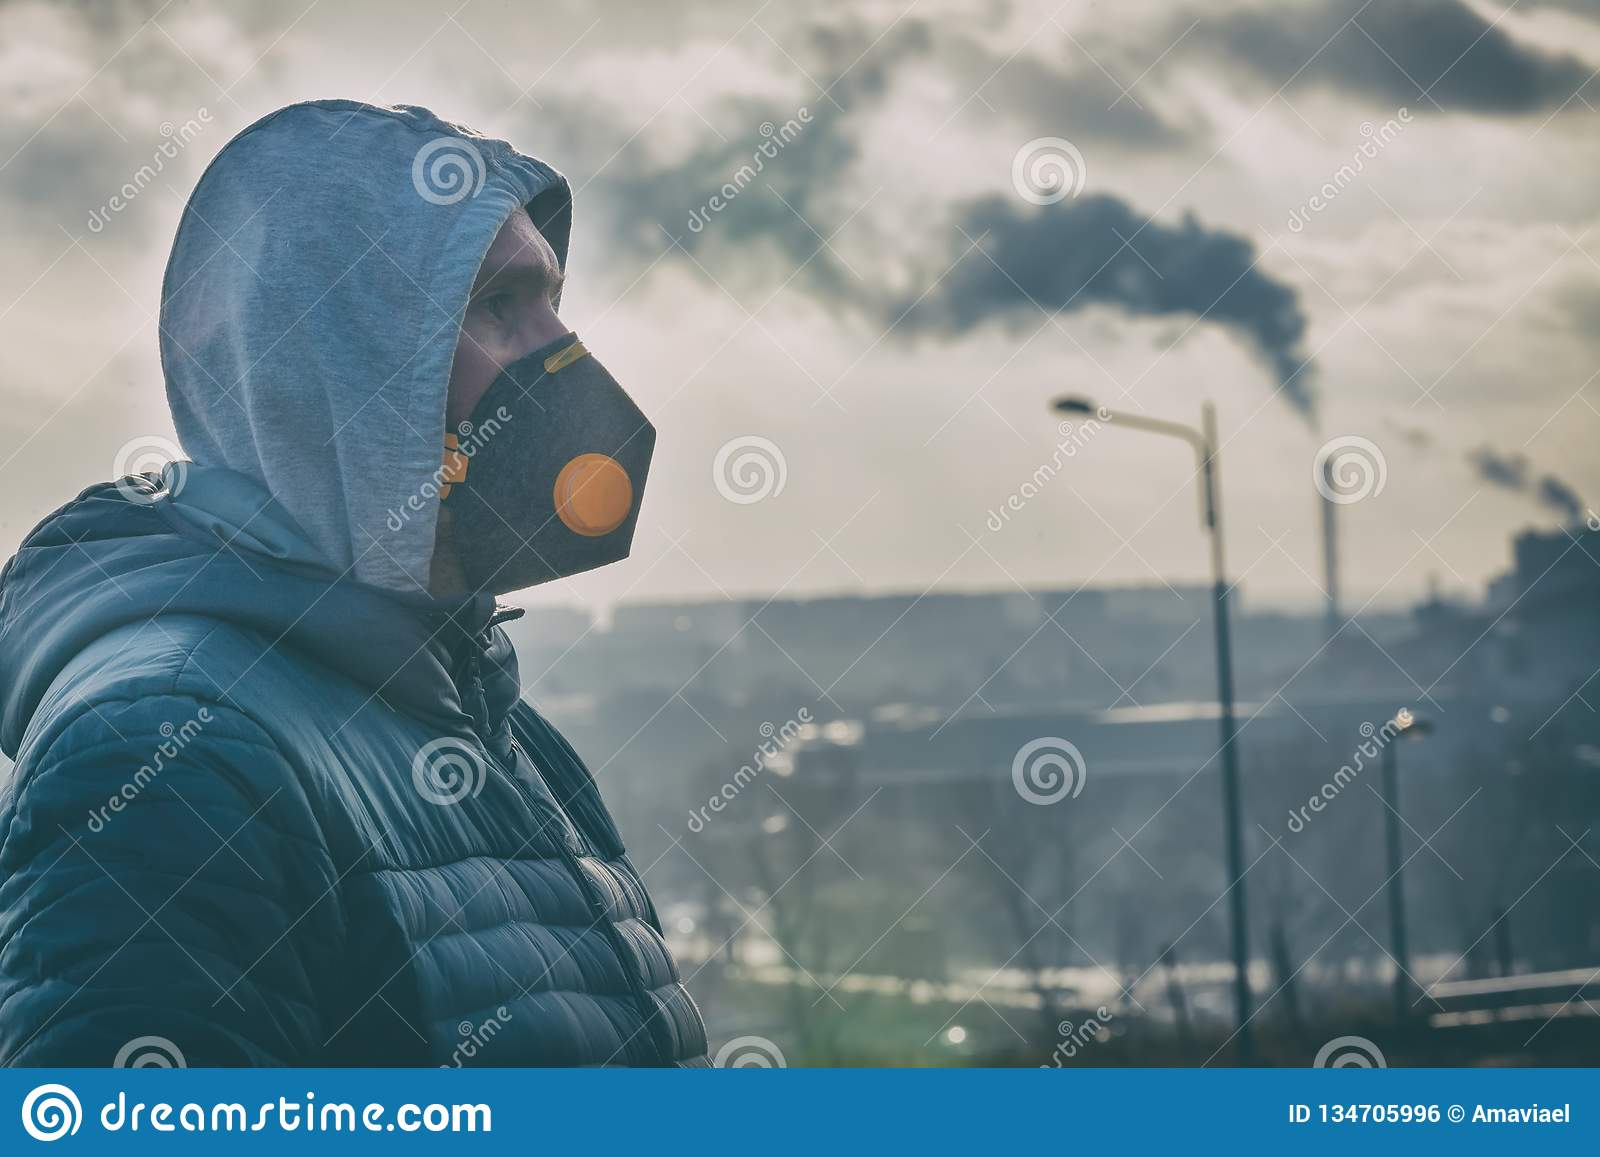 masque anti pollution homme